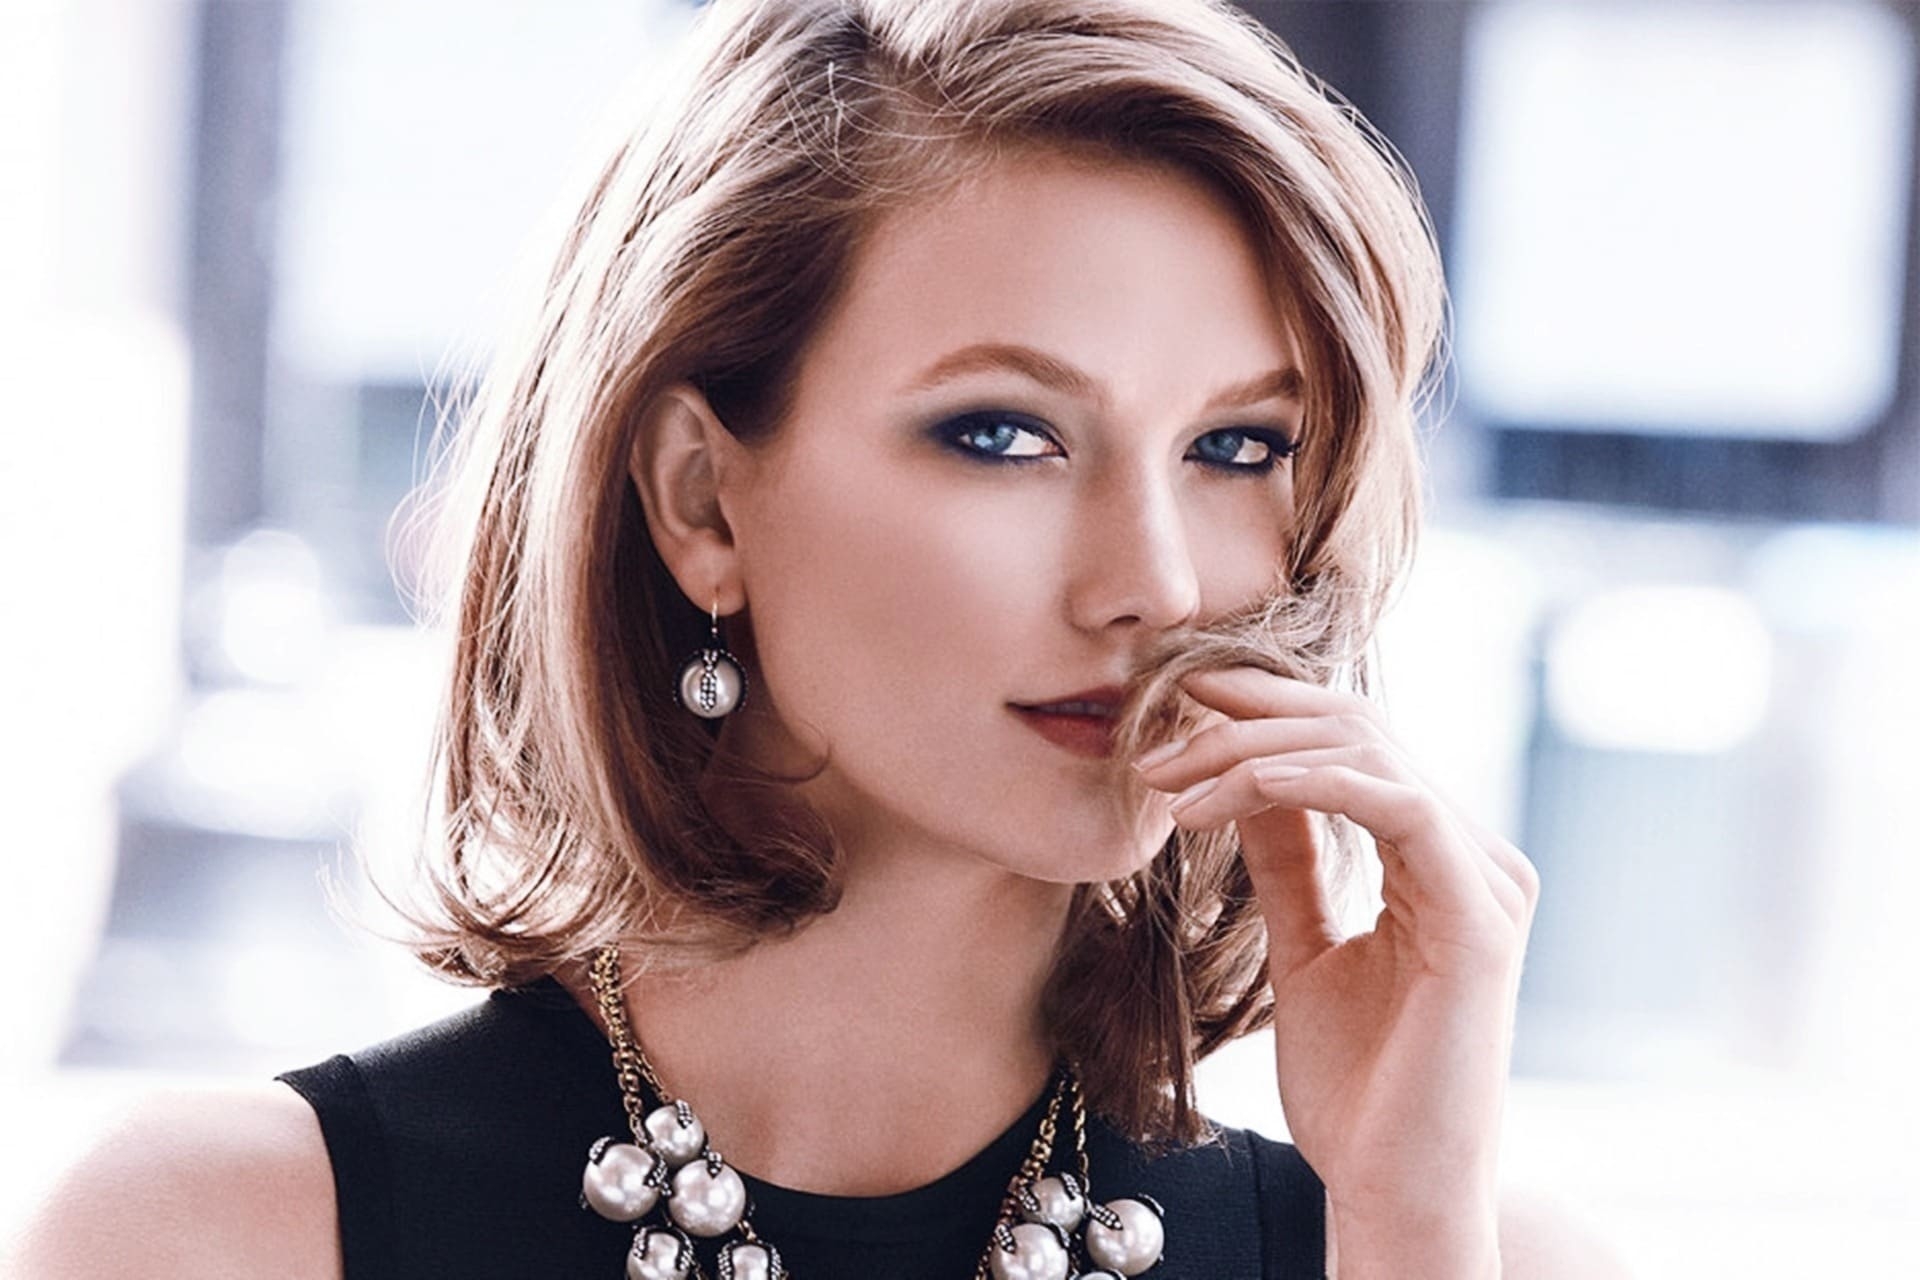 American Fashion Model Karlie Kloss new found love, Running